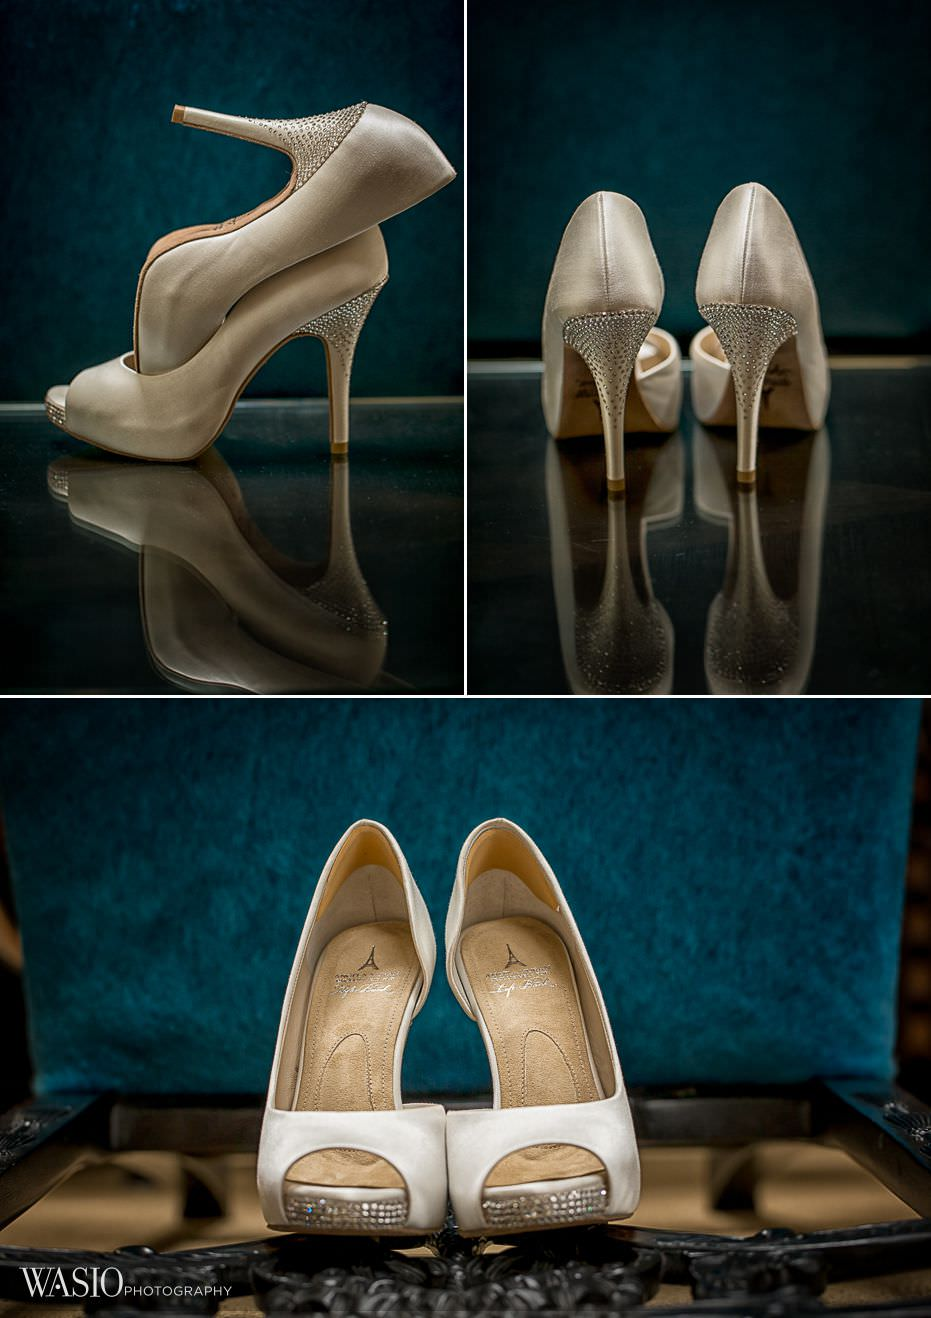 Best-of-wedding-shoes-2016-off-white-bridal-heels-comfortable-style-013 Cast your vote for Best of Wedding Shoes 2016